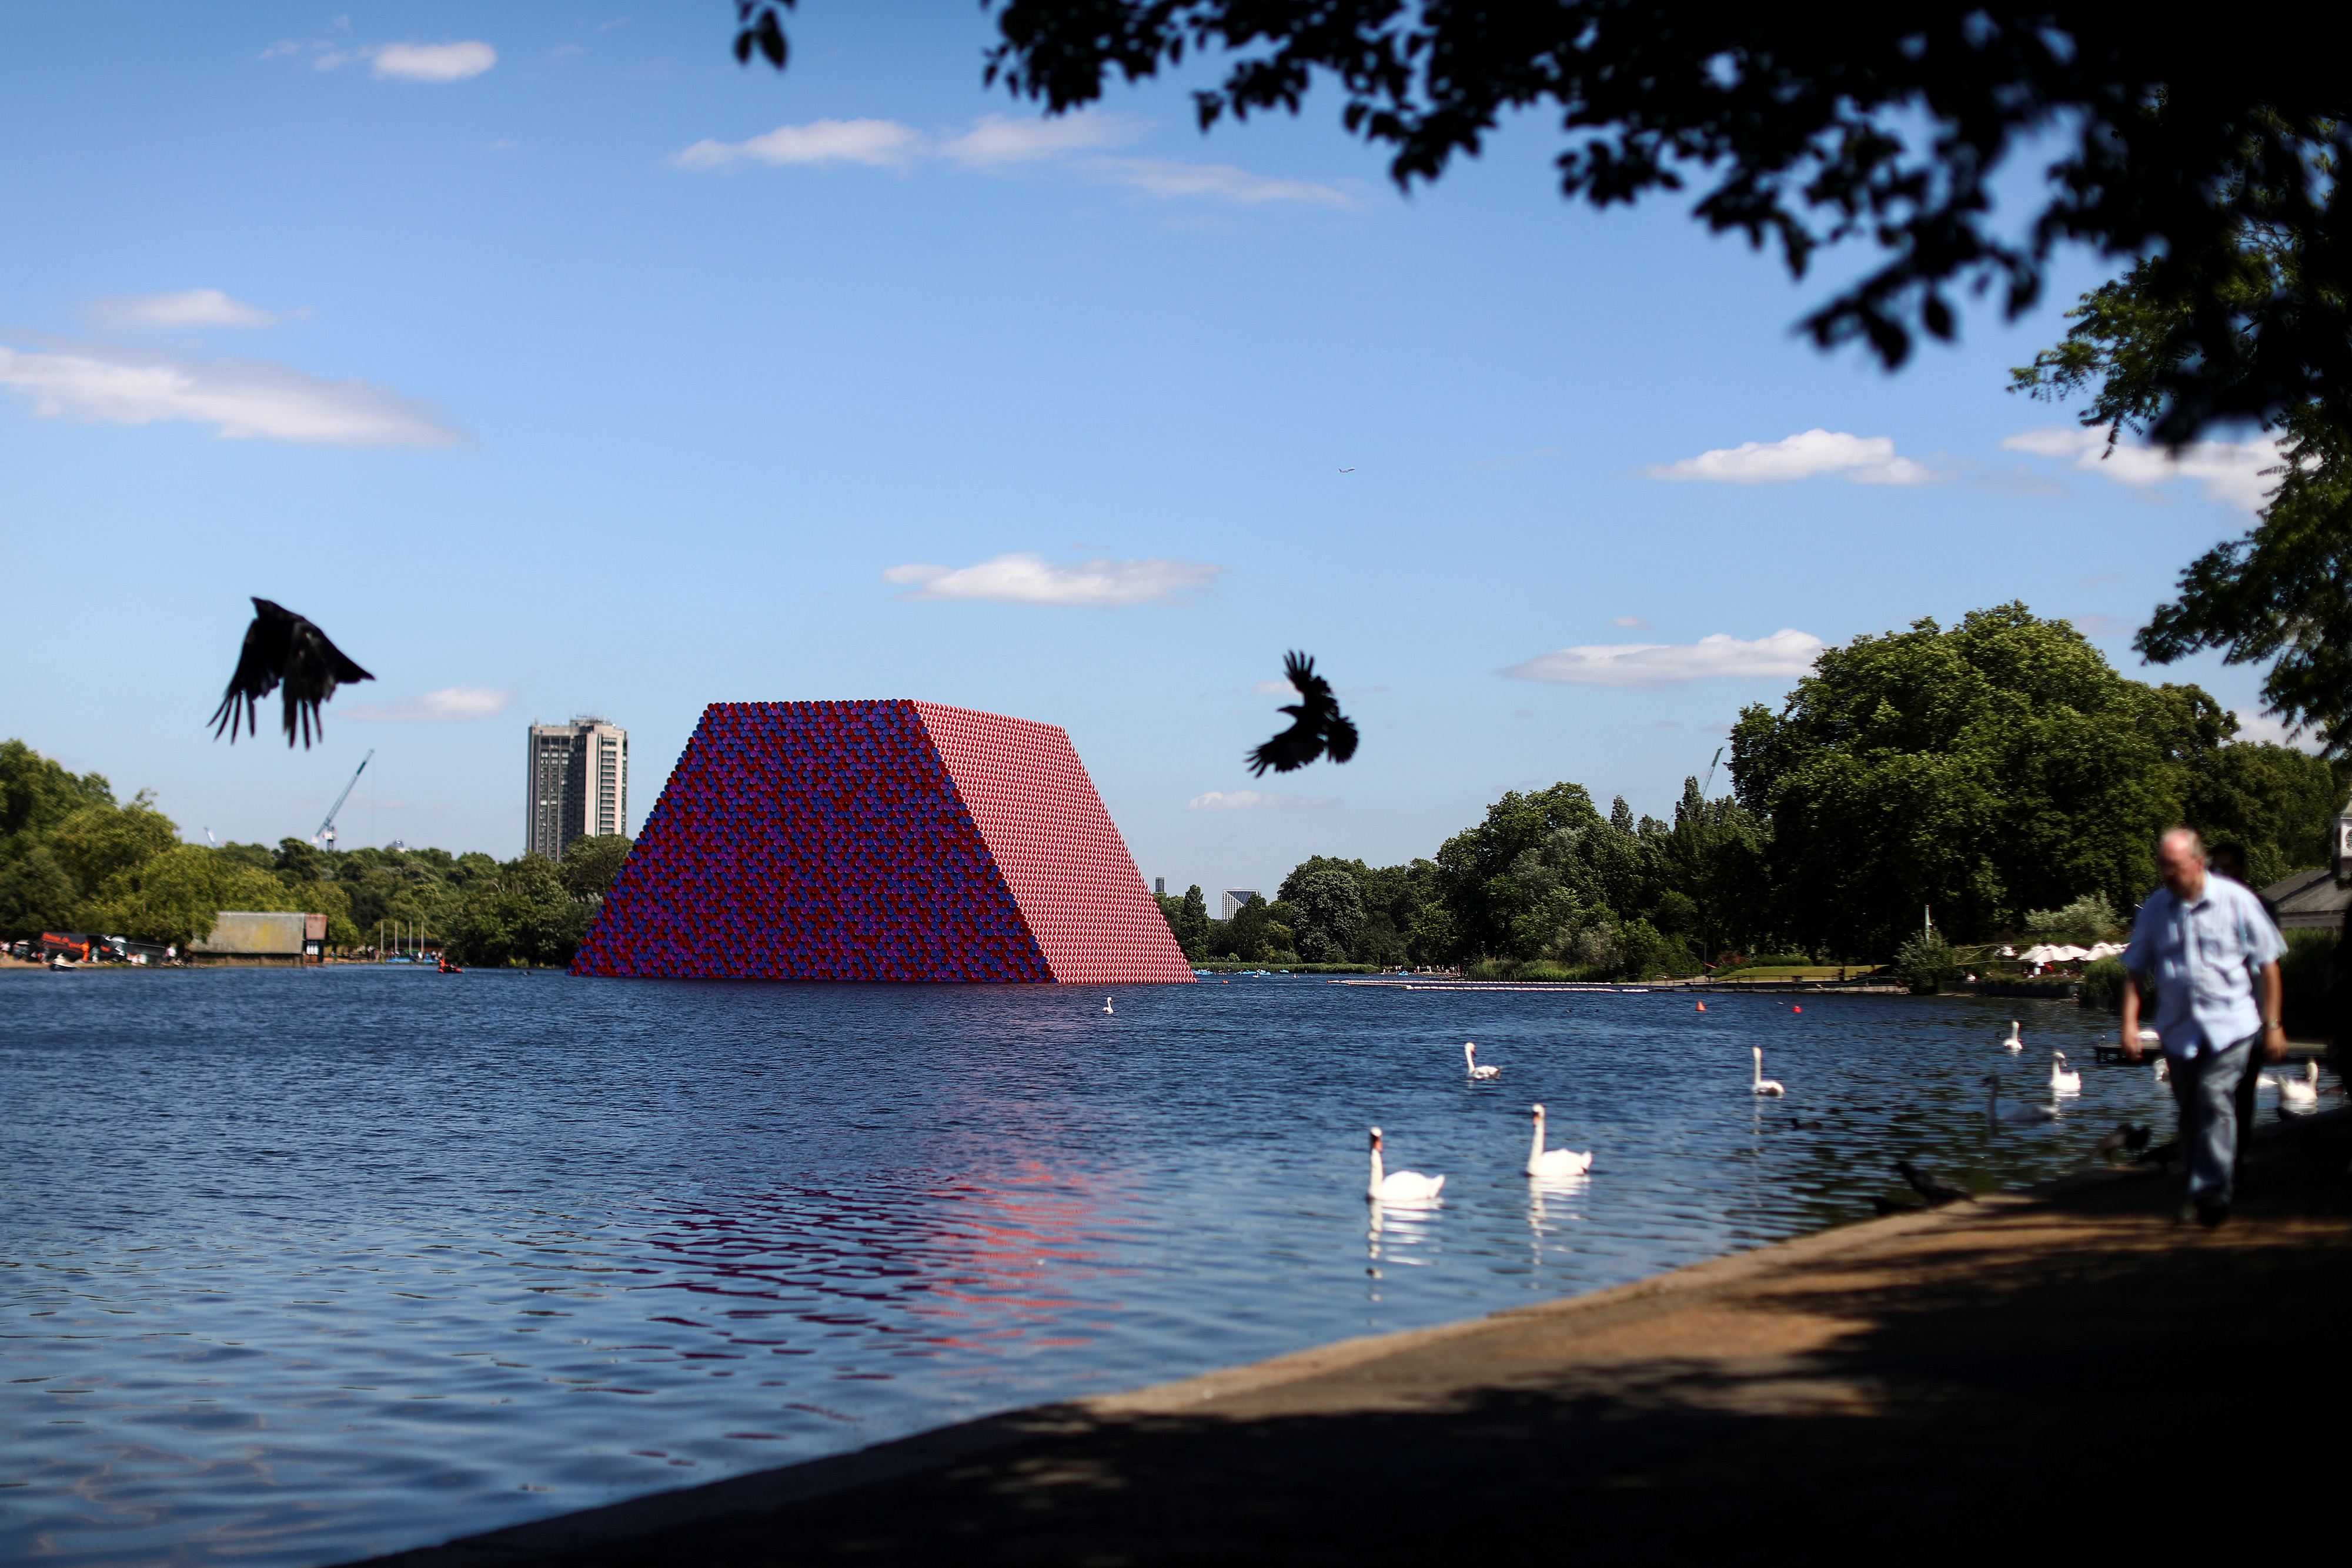 People walk past 'The London Mastaba' by artist Christo as it sits on the Serpentine in Hyde Park, London, Britain, June 18, 2018.